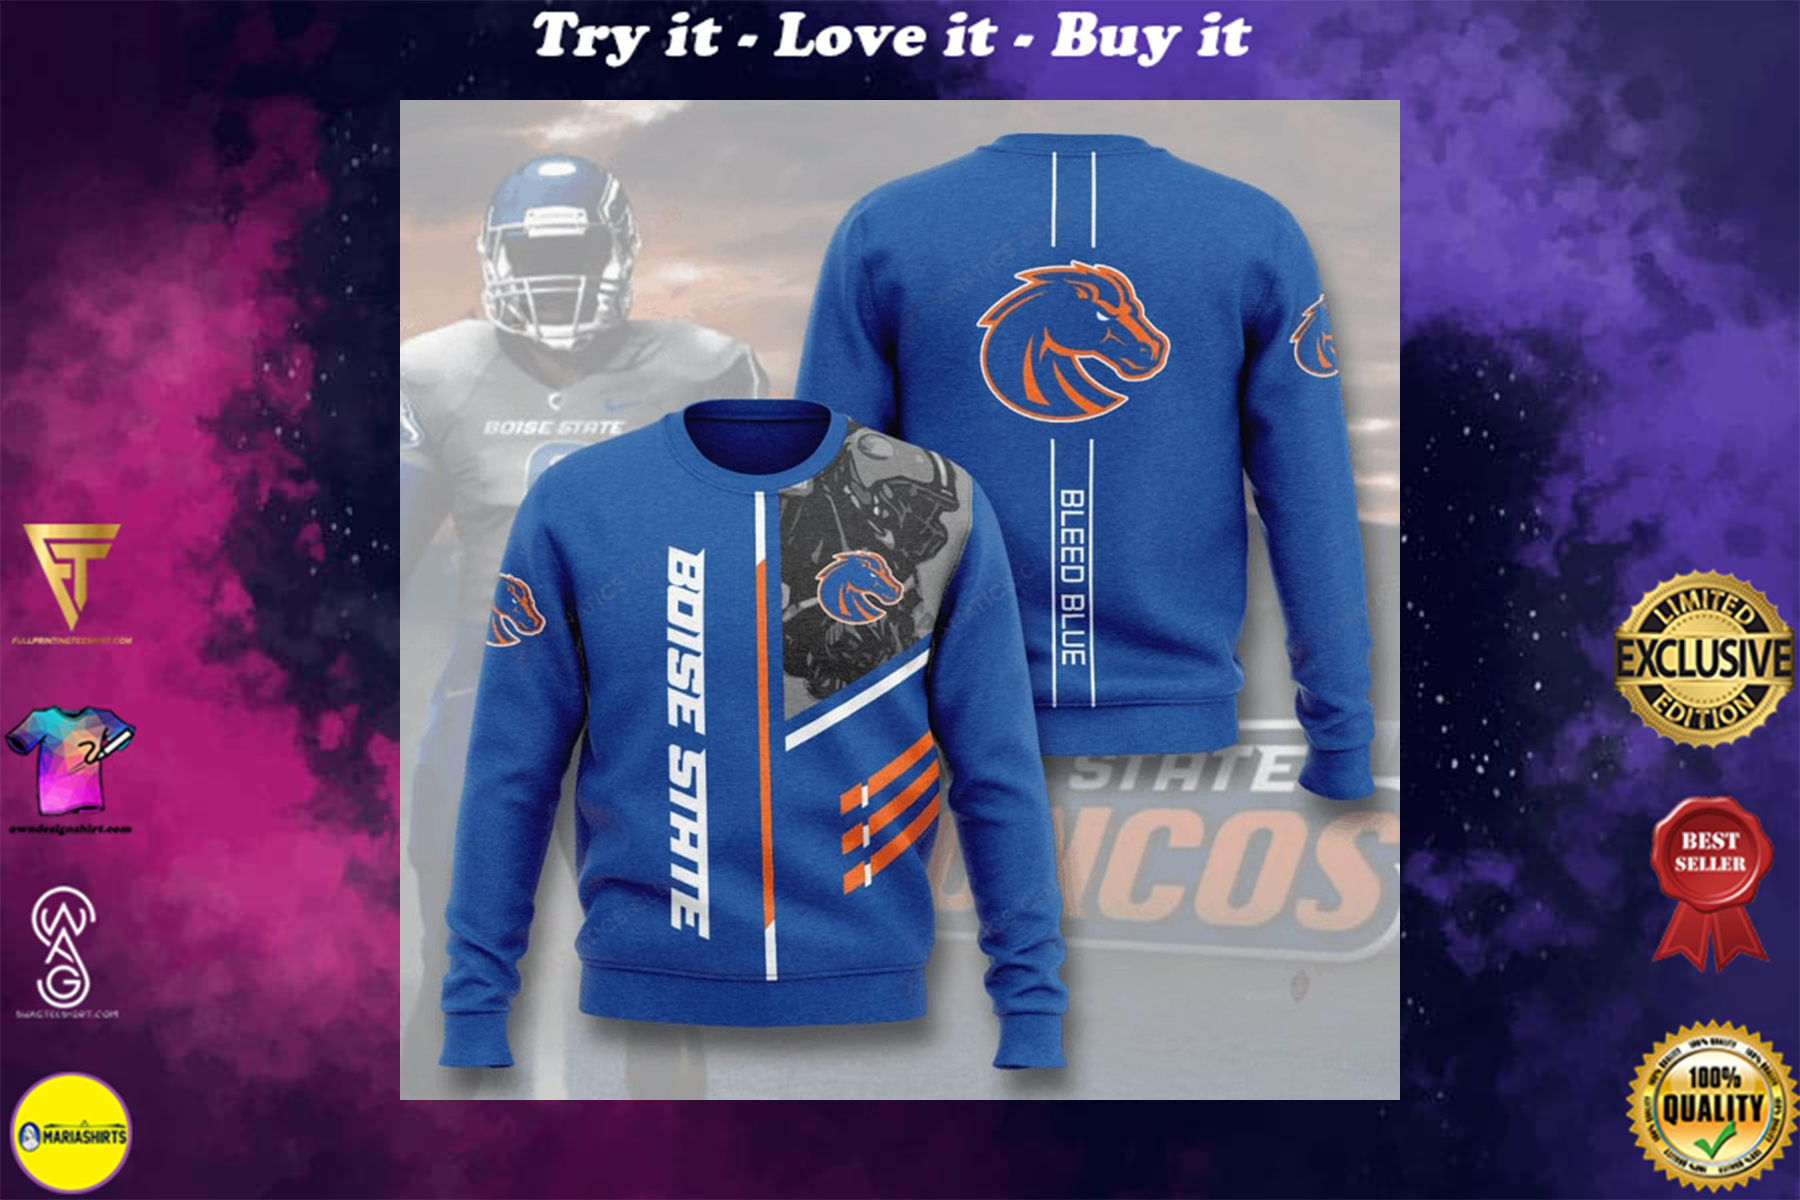 [special edition] boise state broncos bleed blue full printing ugly sweater - maria